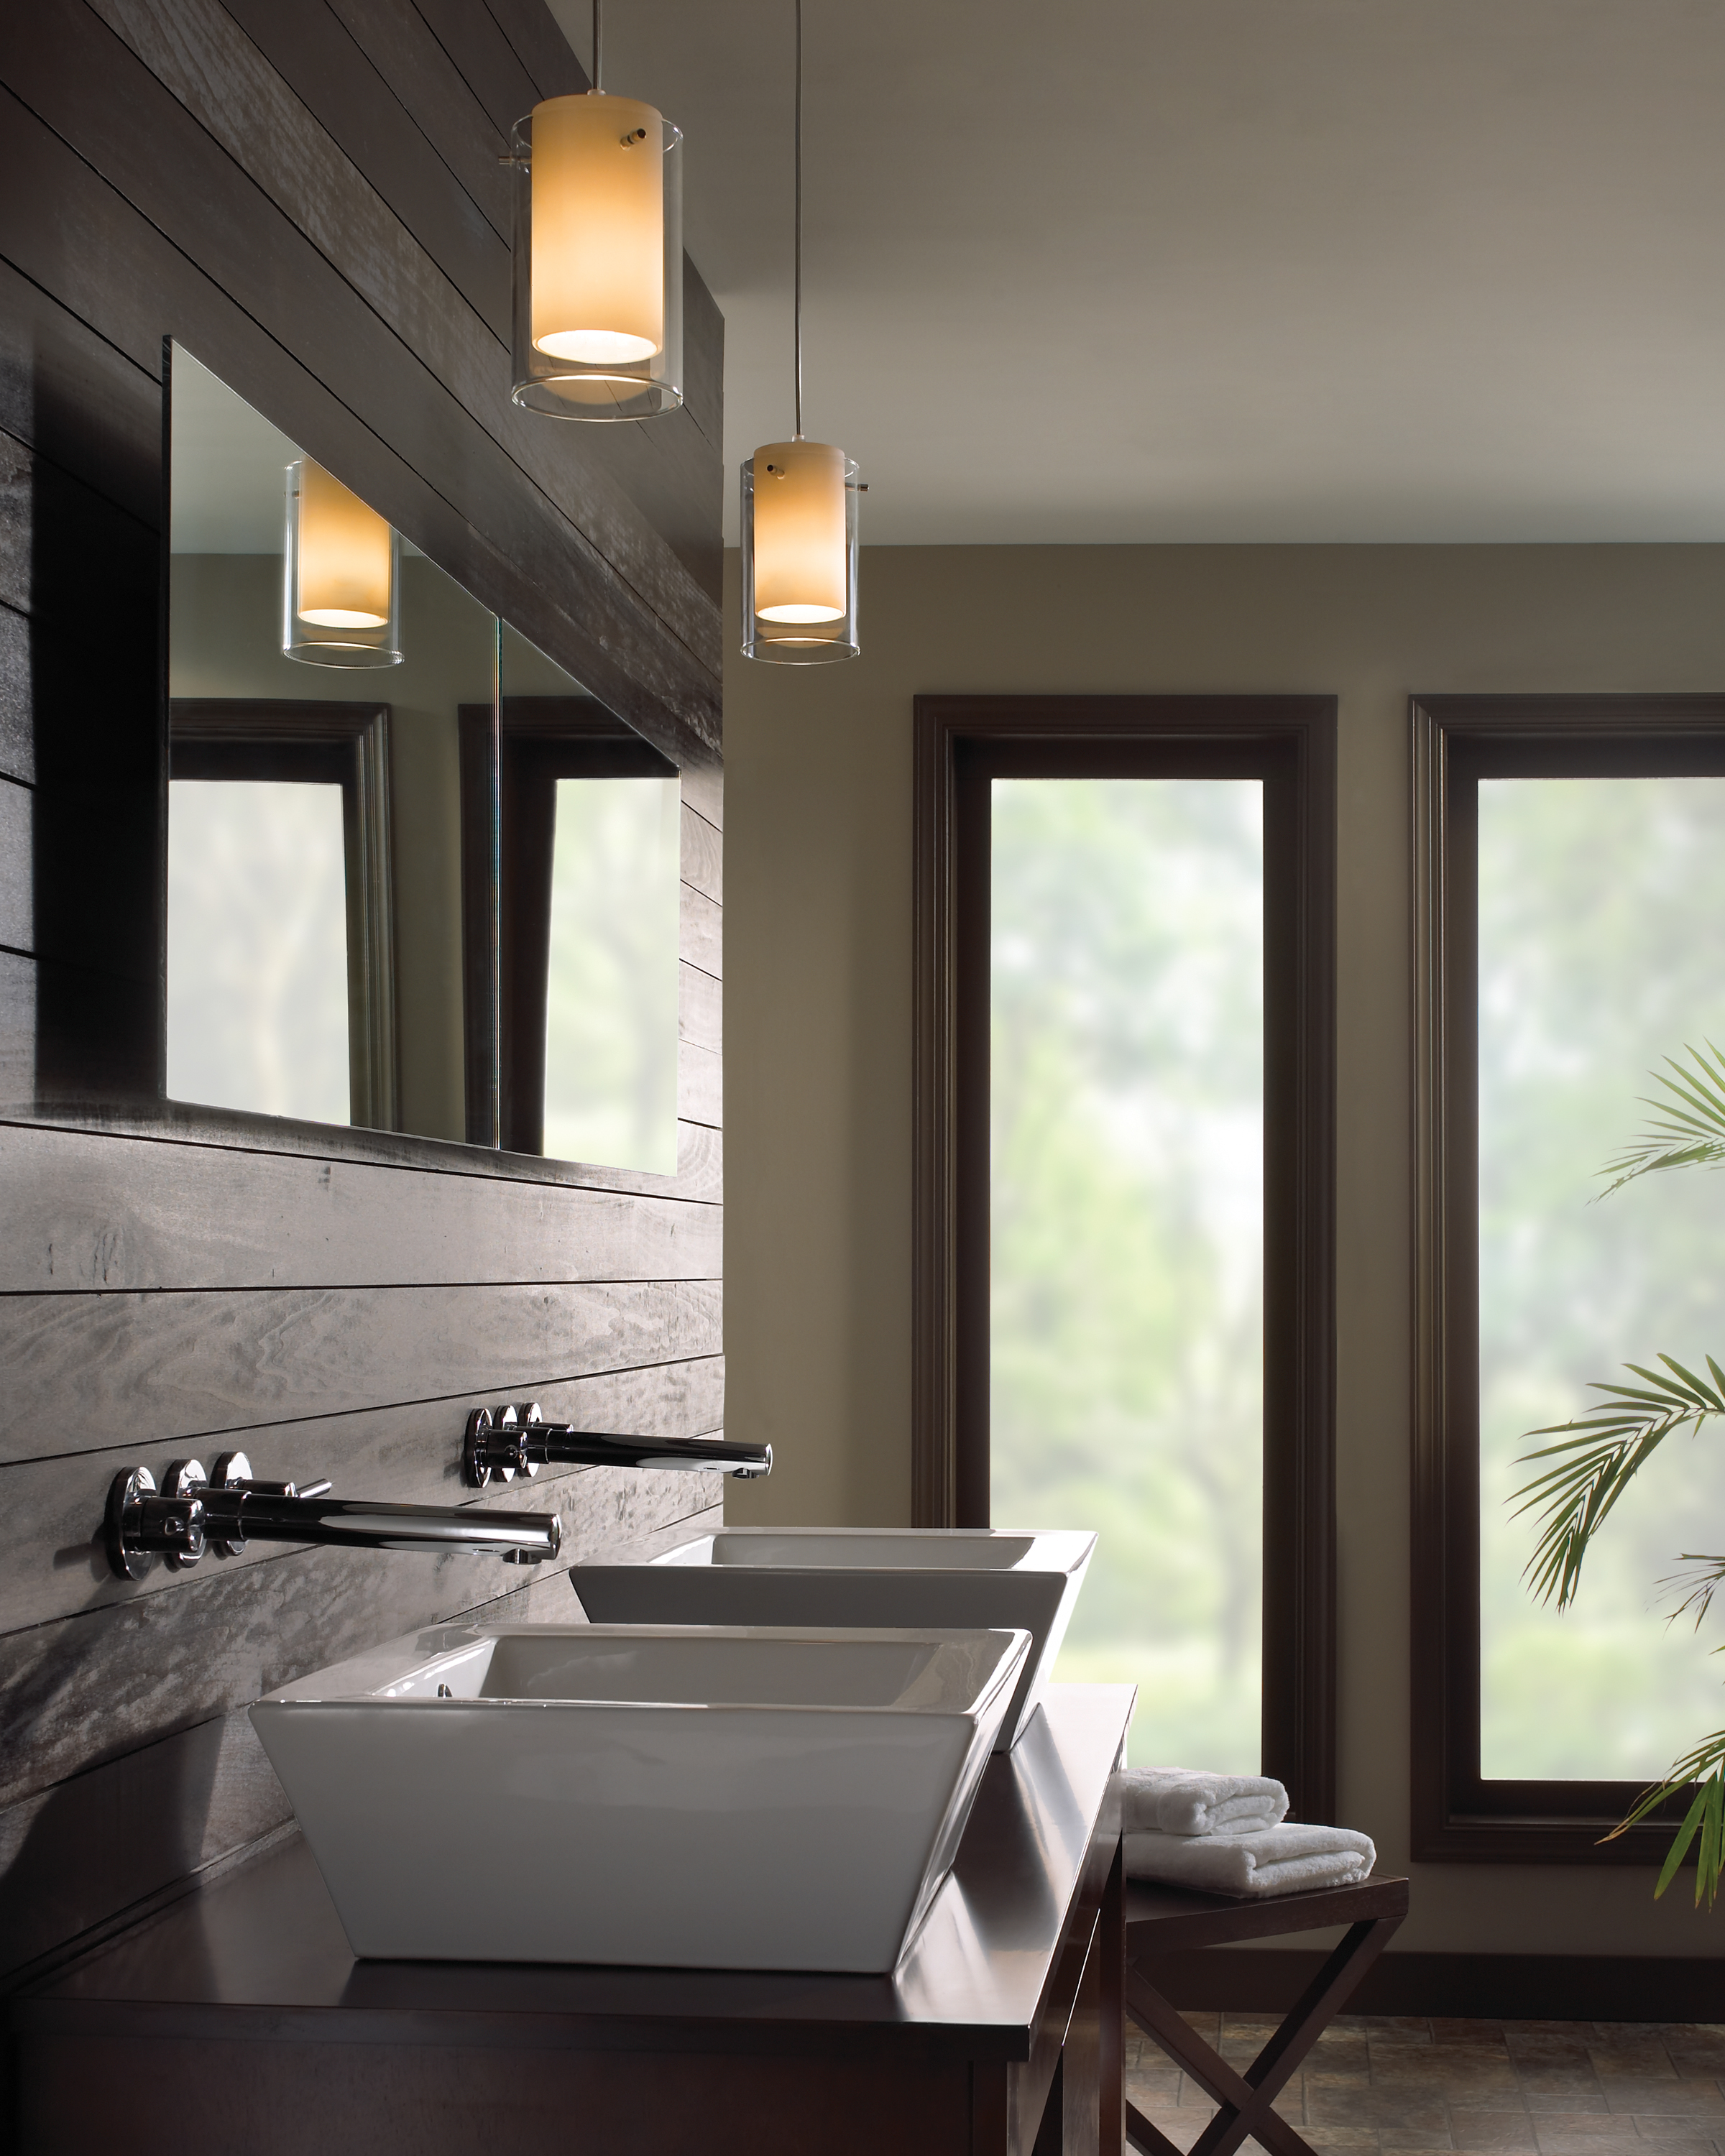 over cabinet lighting bathroom. via httptechlightingcomproductdescaspx7tkwgkh over cabinet lighting bathroom